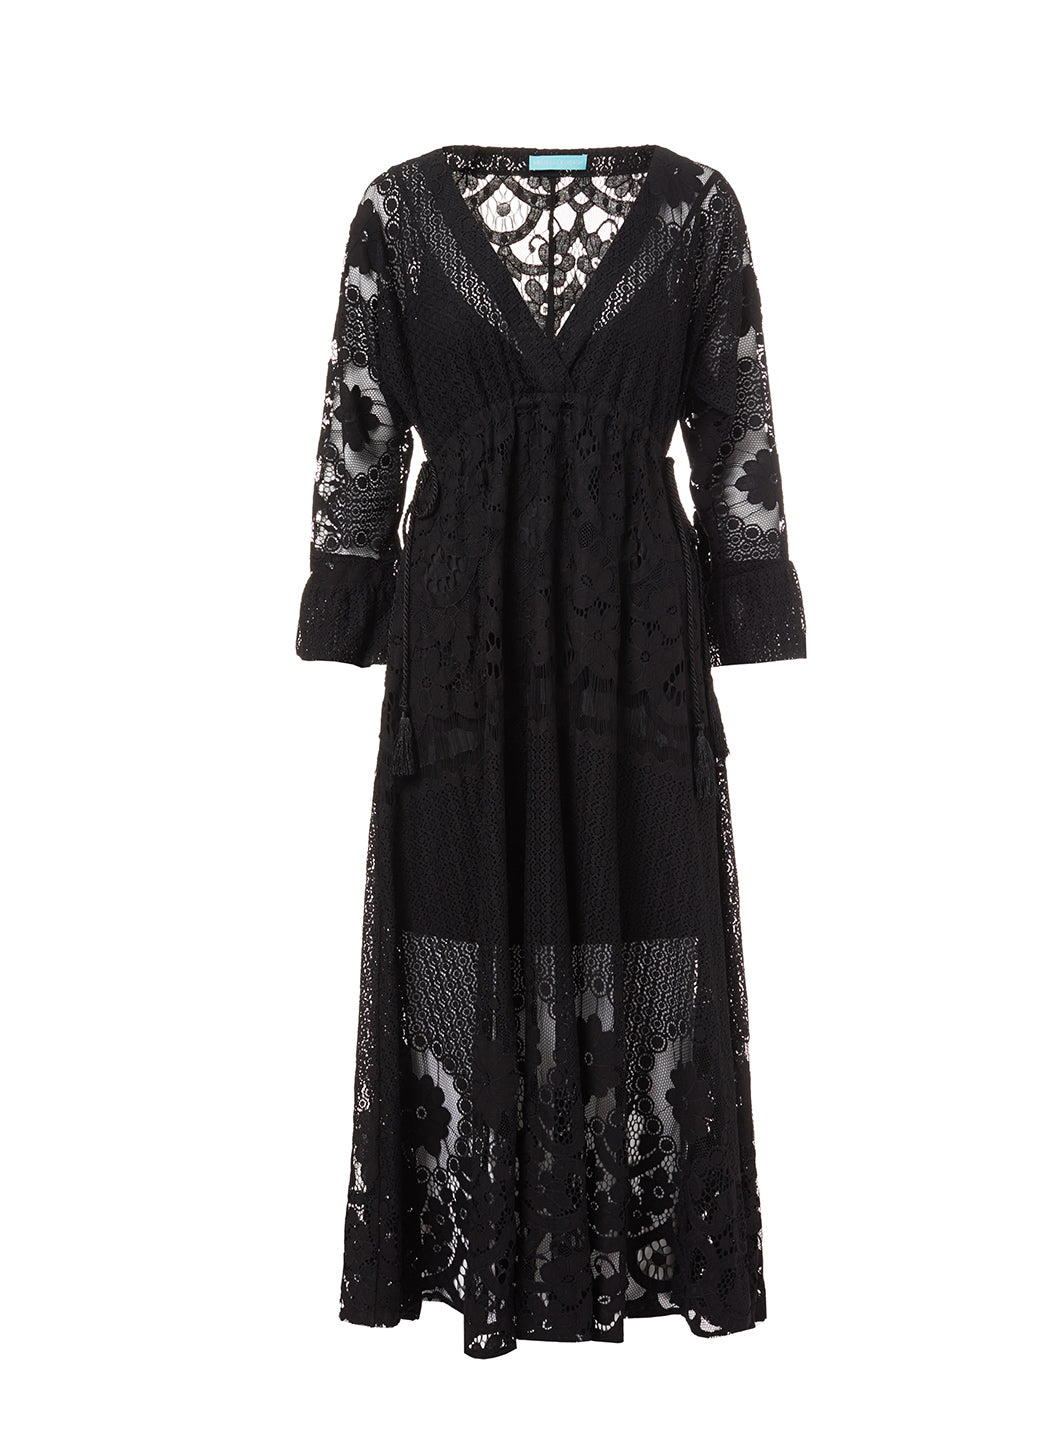 Melissa Black Lace Tie-Side Midi Dress - Melissa Odabash Beachwear